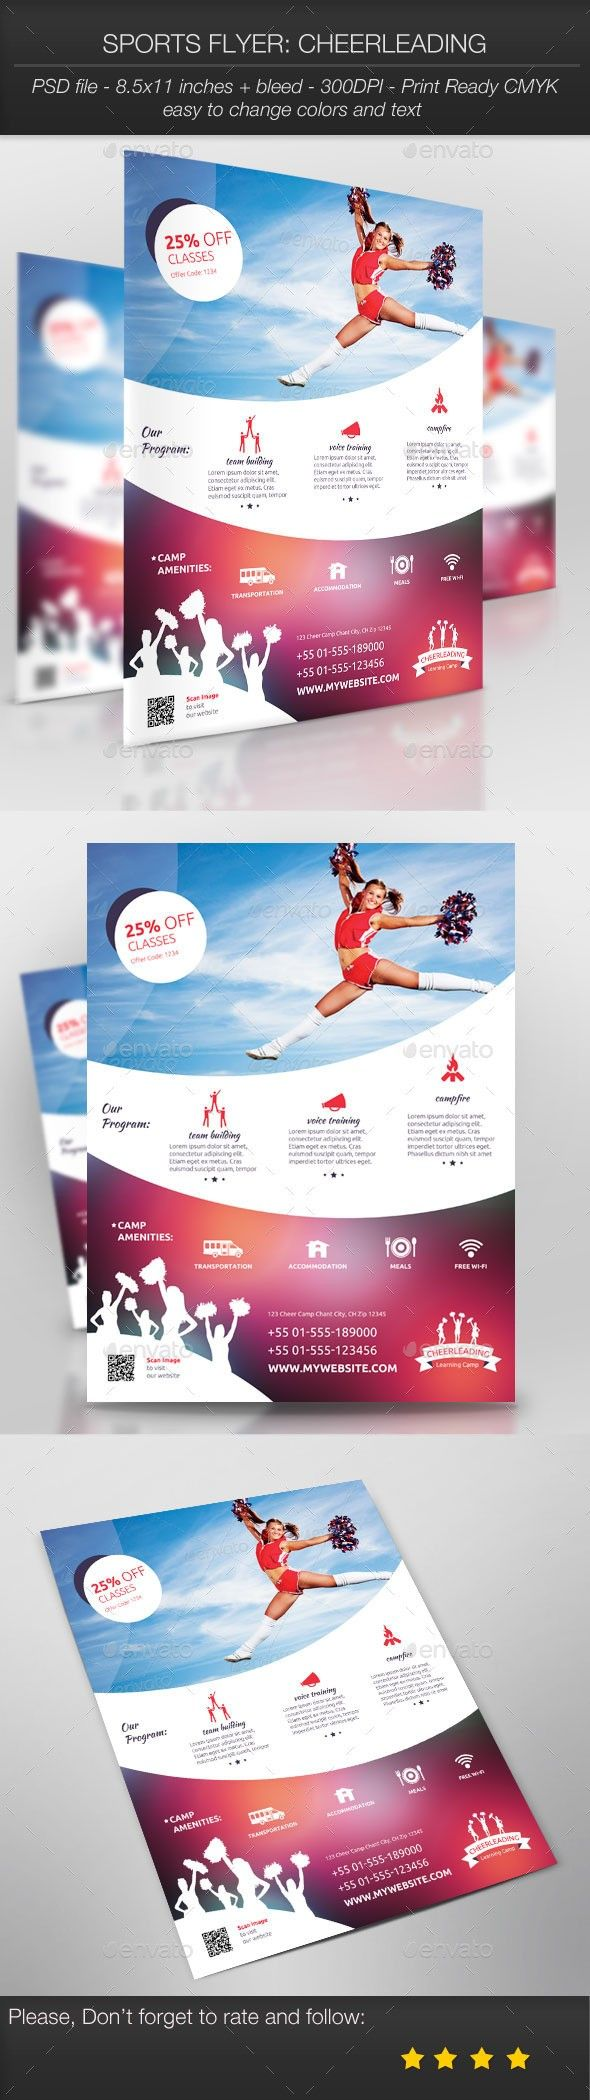 pin by julia covic on flyer design templates pinterest sports